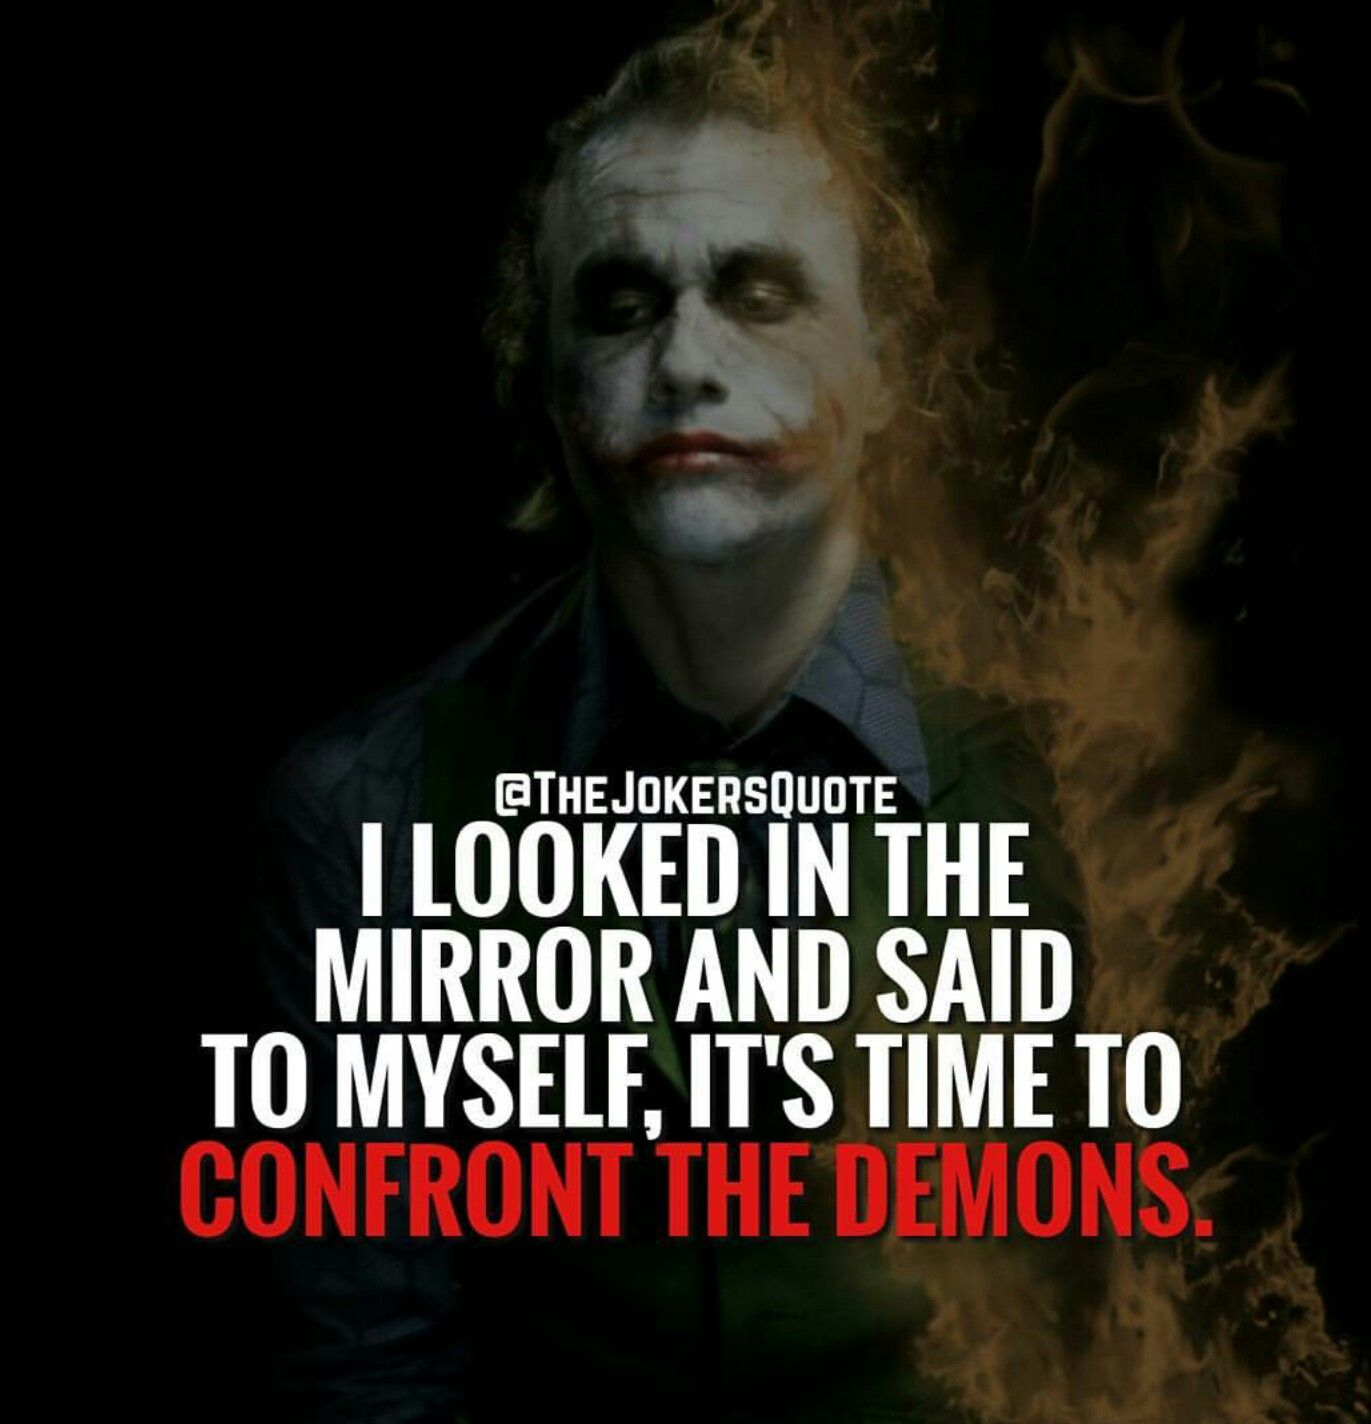 Joker Quotes Tftfyvy  Joker's  Pinterest  Joker Joker Quotes And Bipolar Disorder